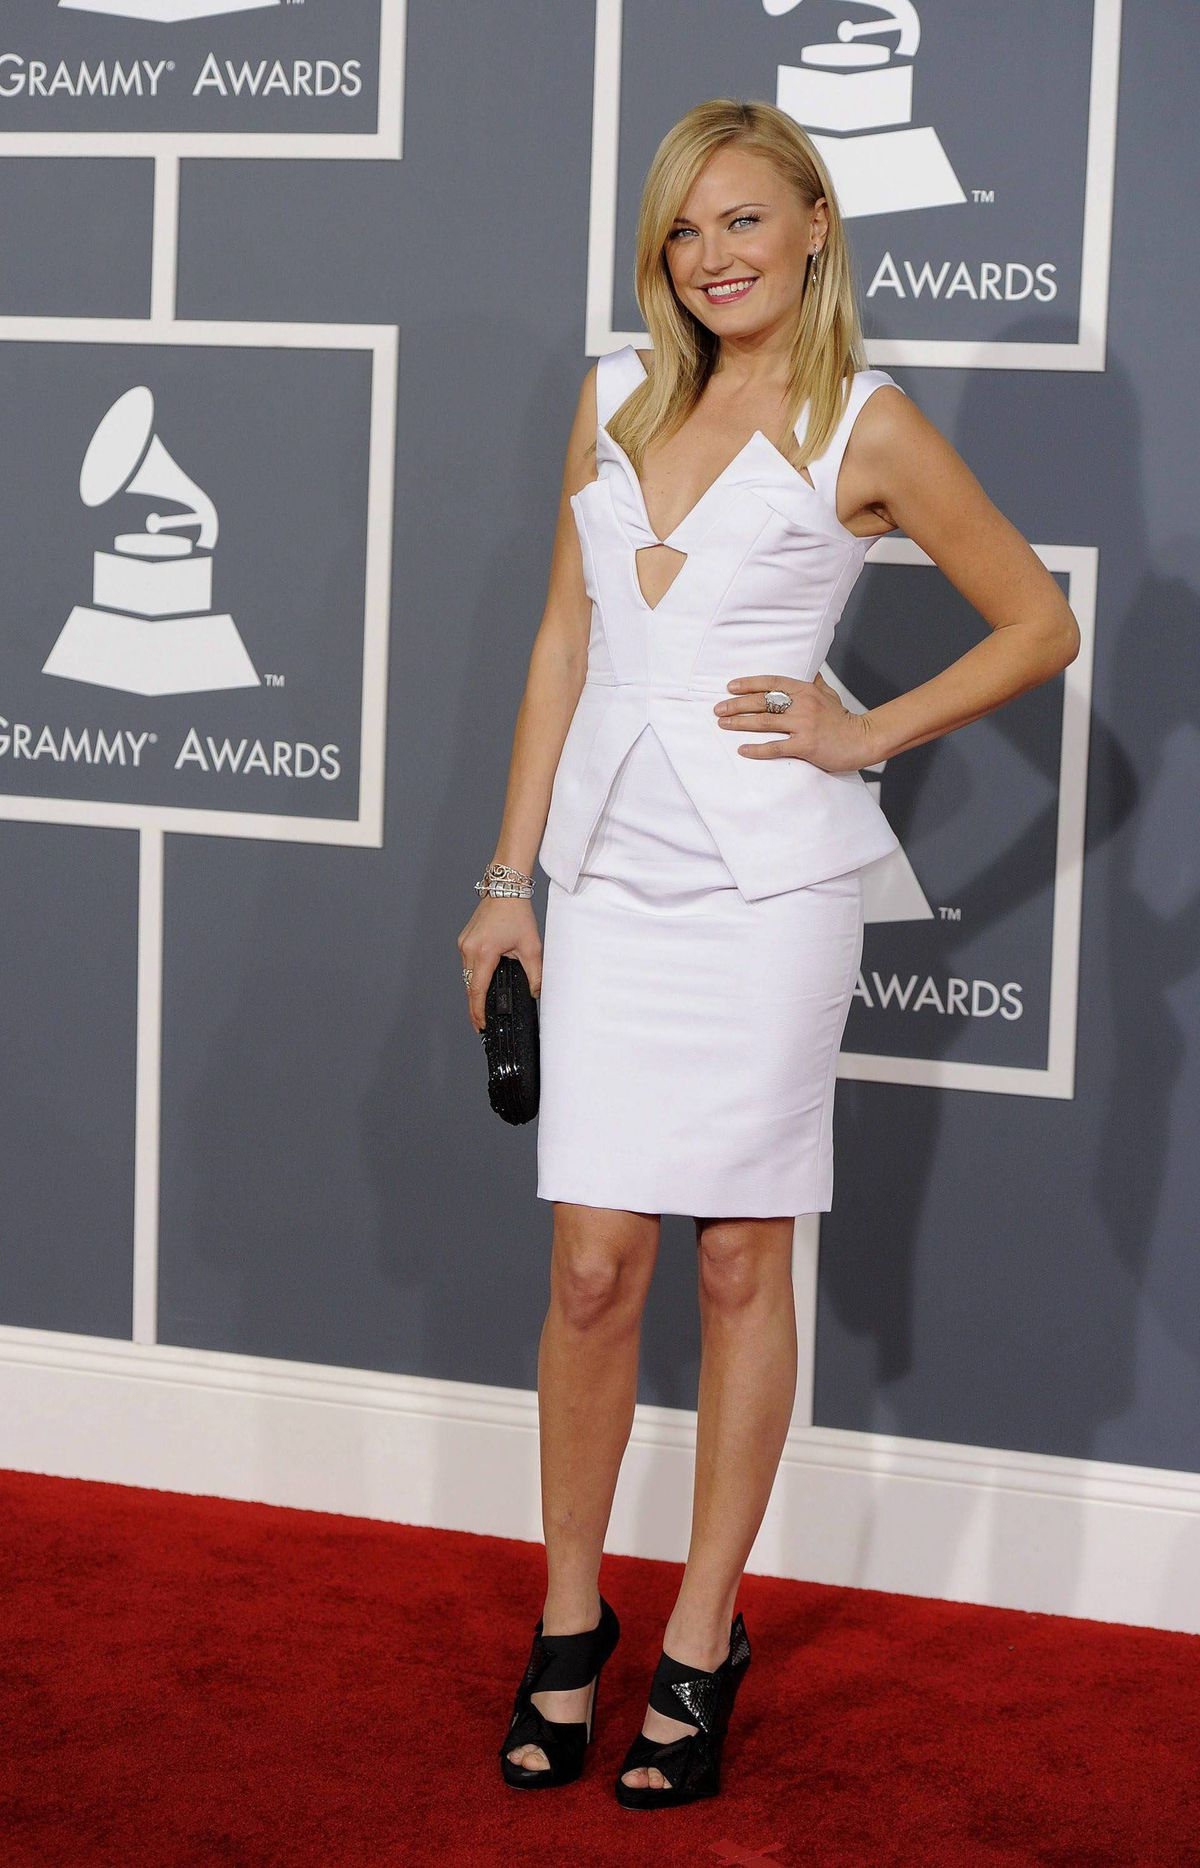 Malin Akerman arrives at the 54th annual Grammy Awards on Sunday, Feb. 12, 2012 in Los Angeles.